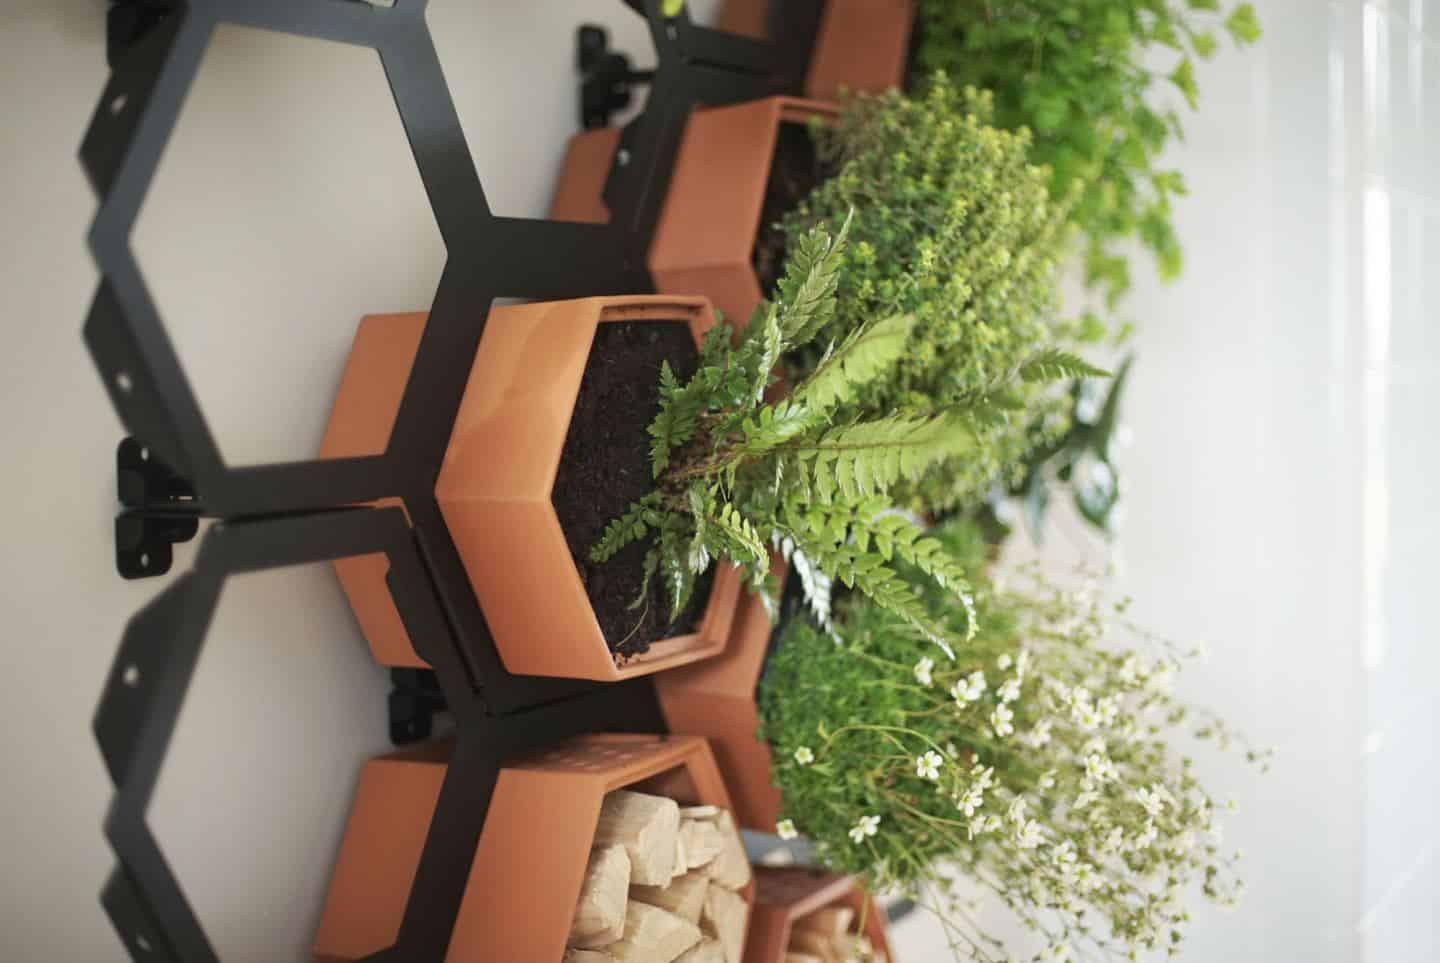 Chalk & Moss Horticus interior vertical garden kit